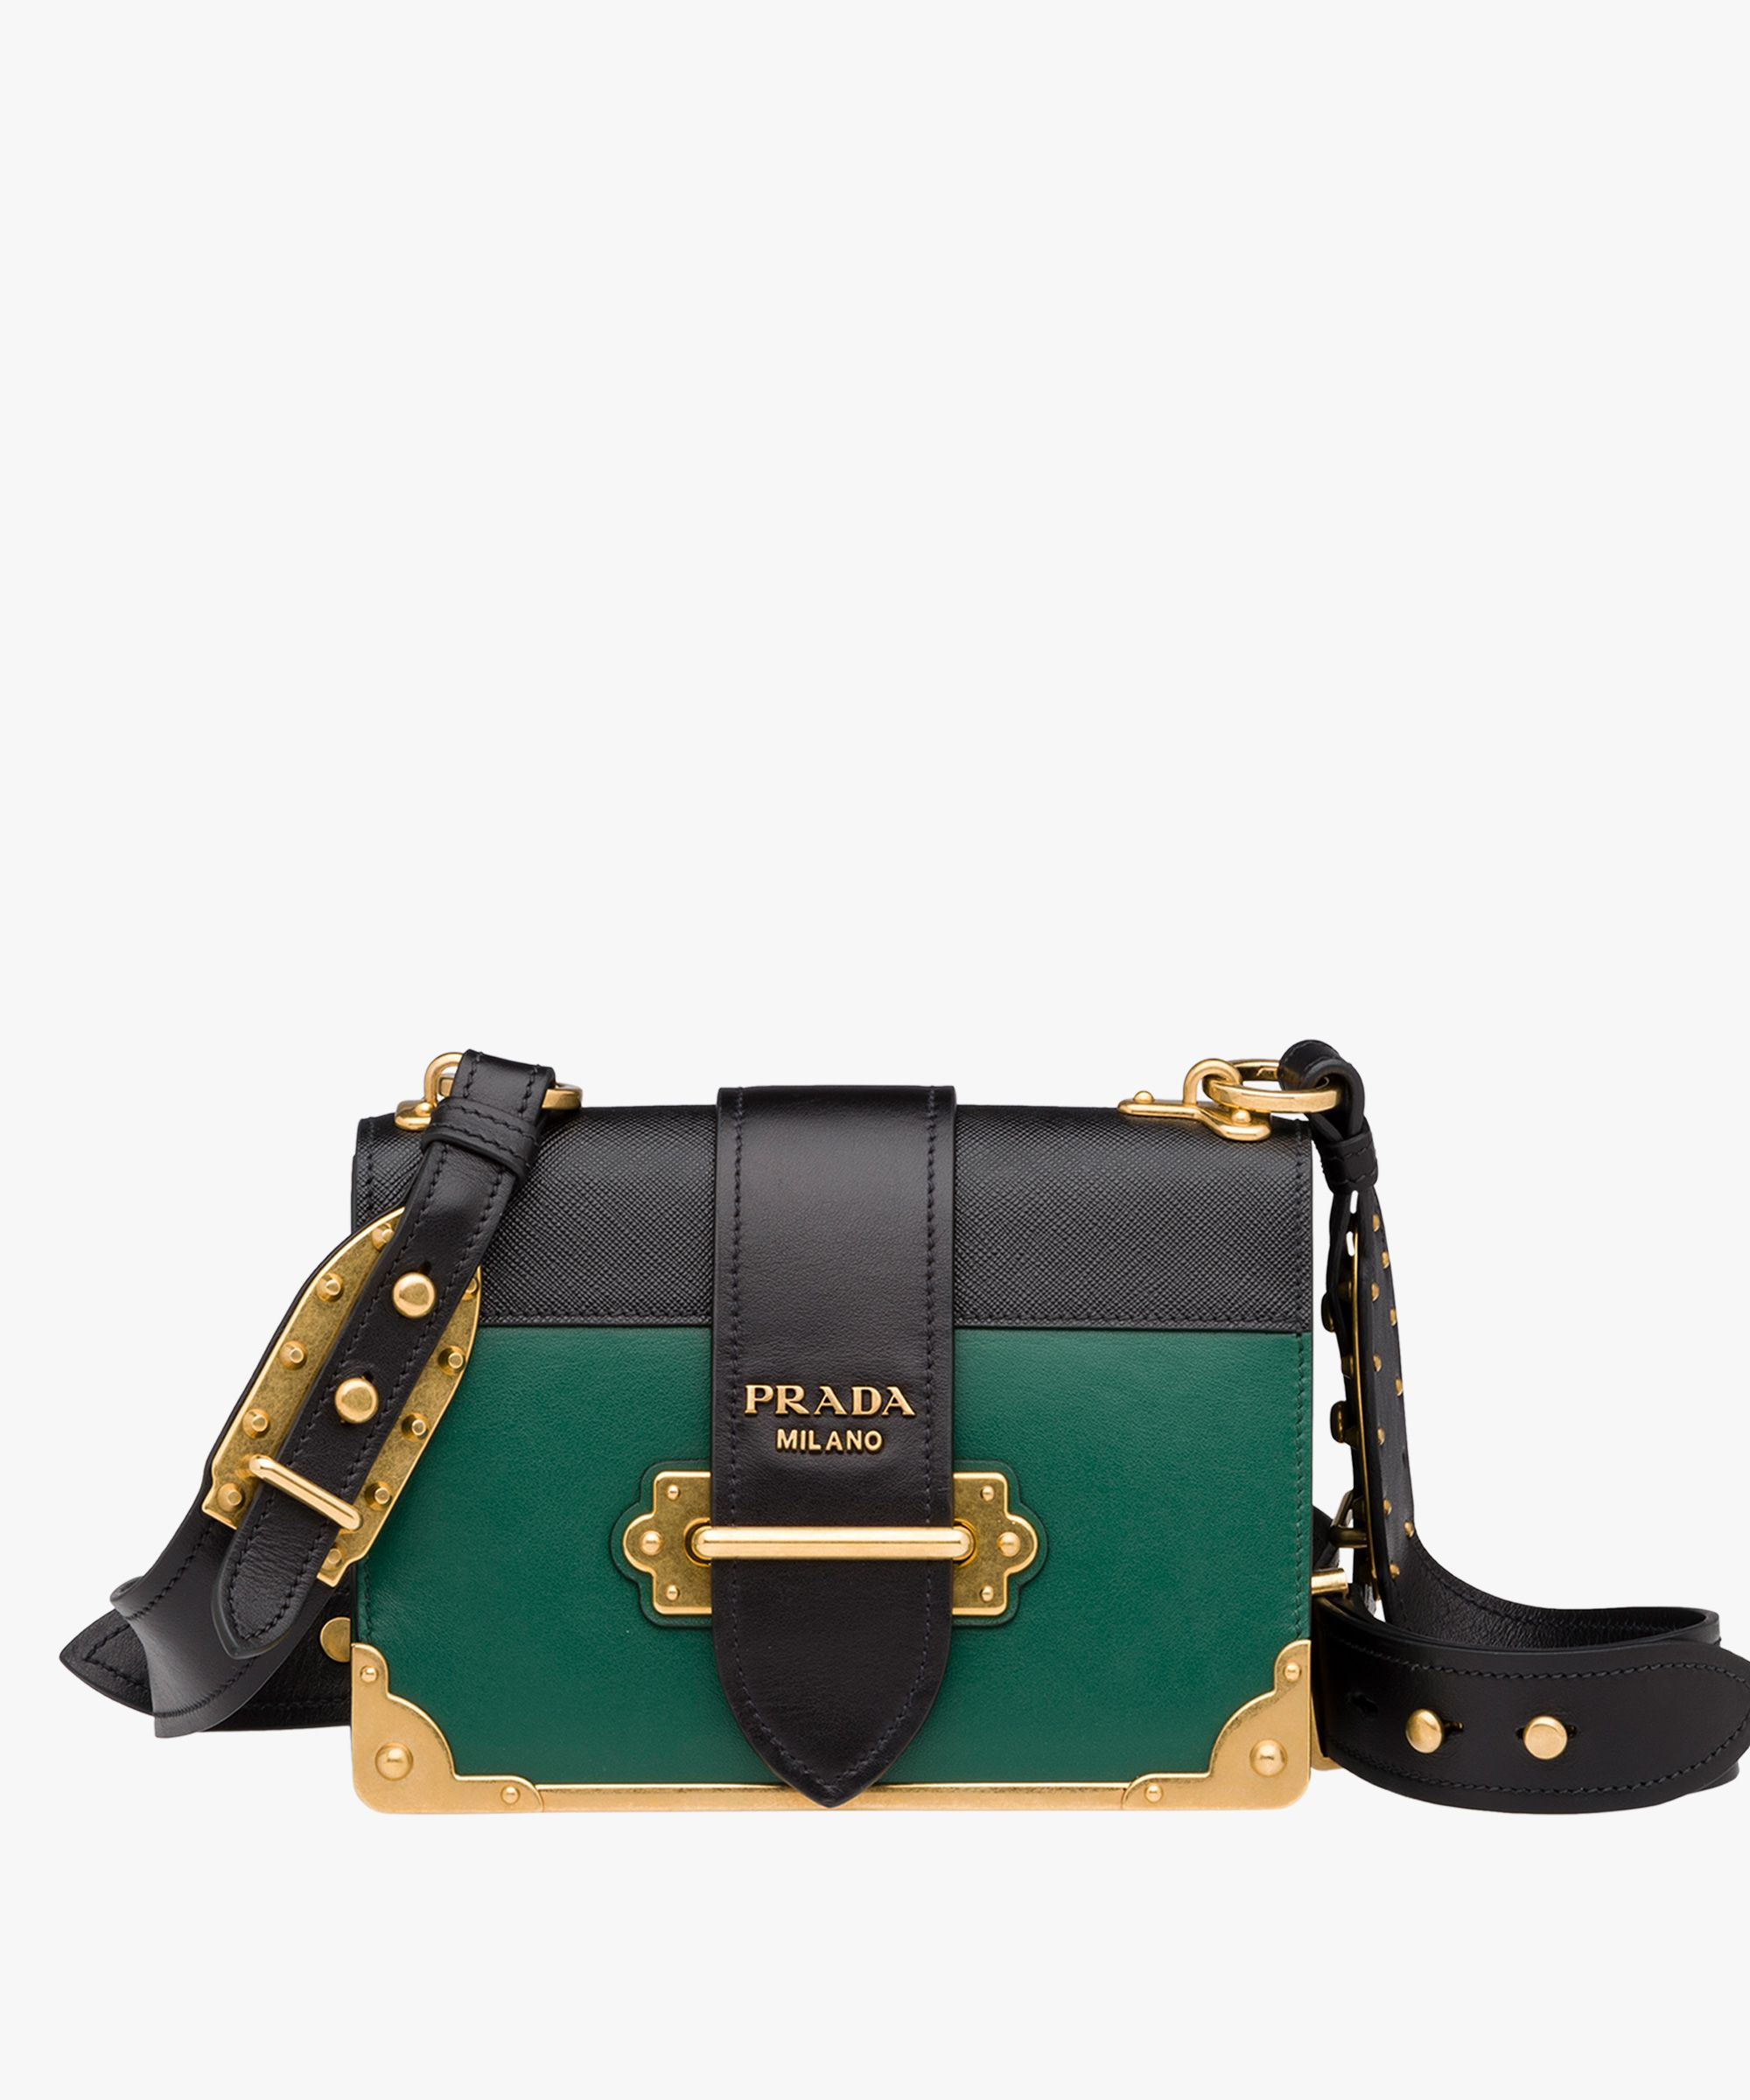 c3e6c25454b7 Prada cahier bag - Billiard green + black, or terracotta or cornflower blue